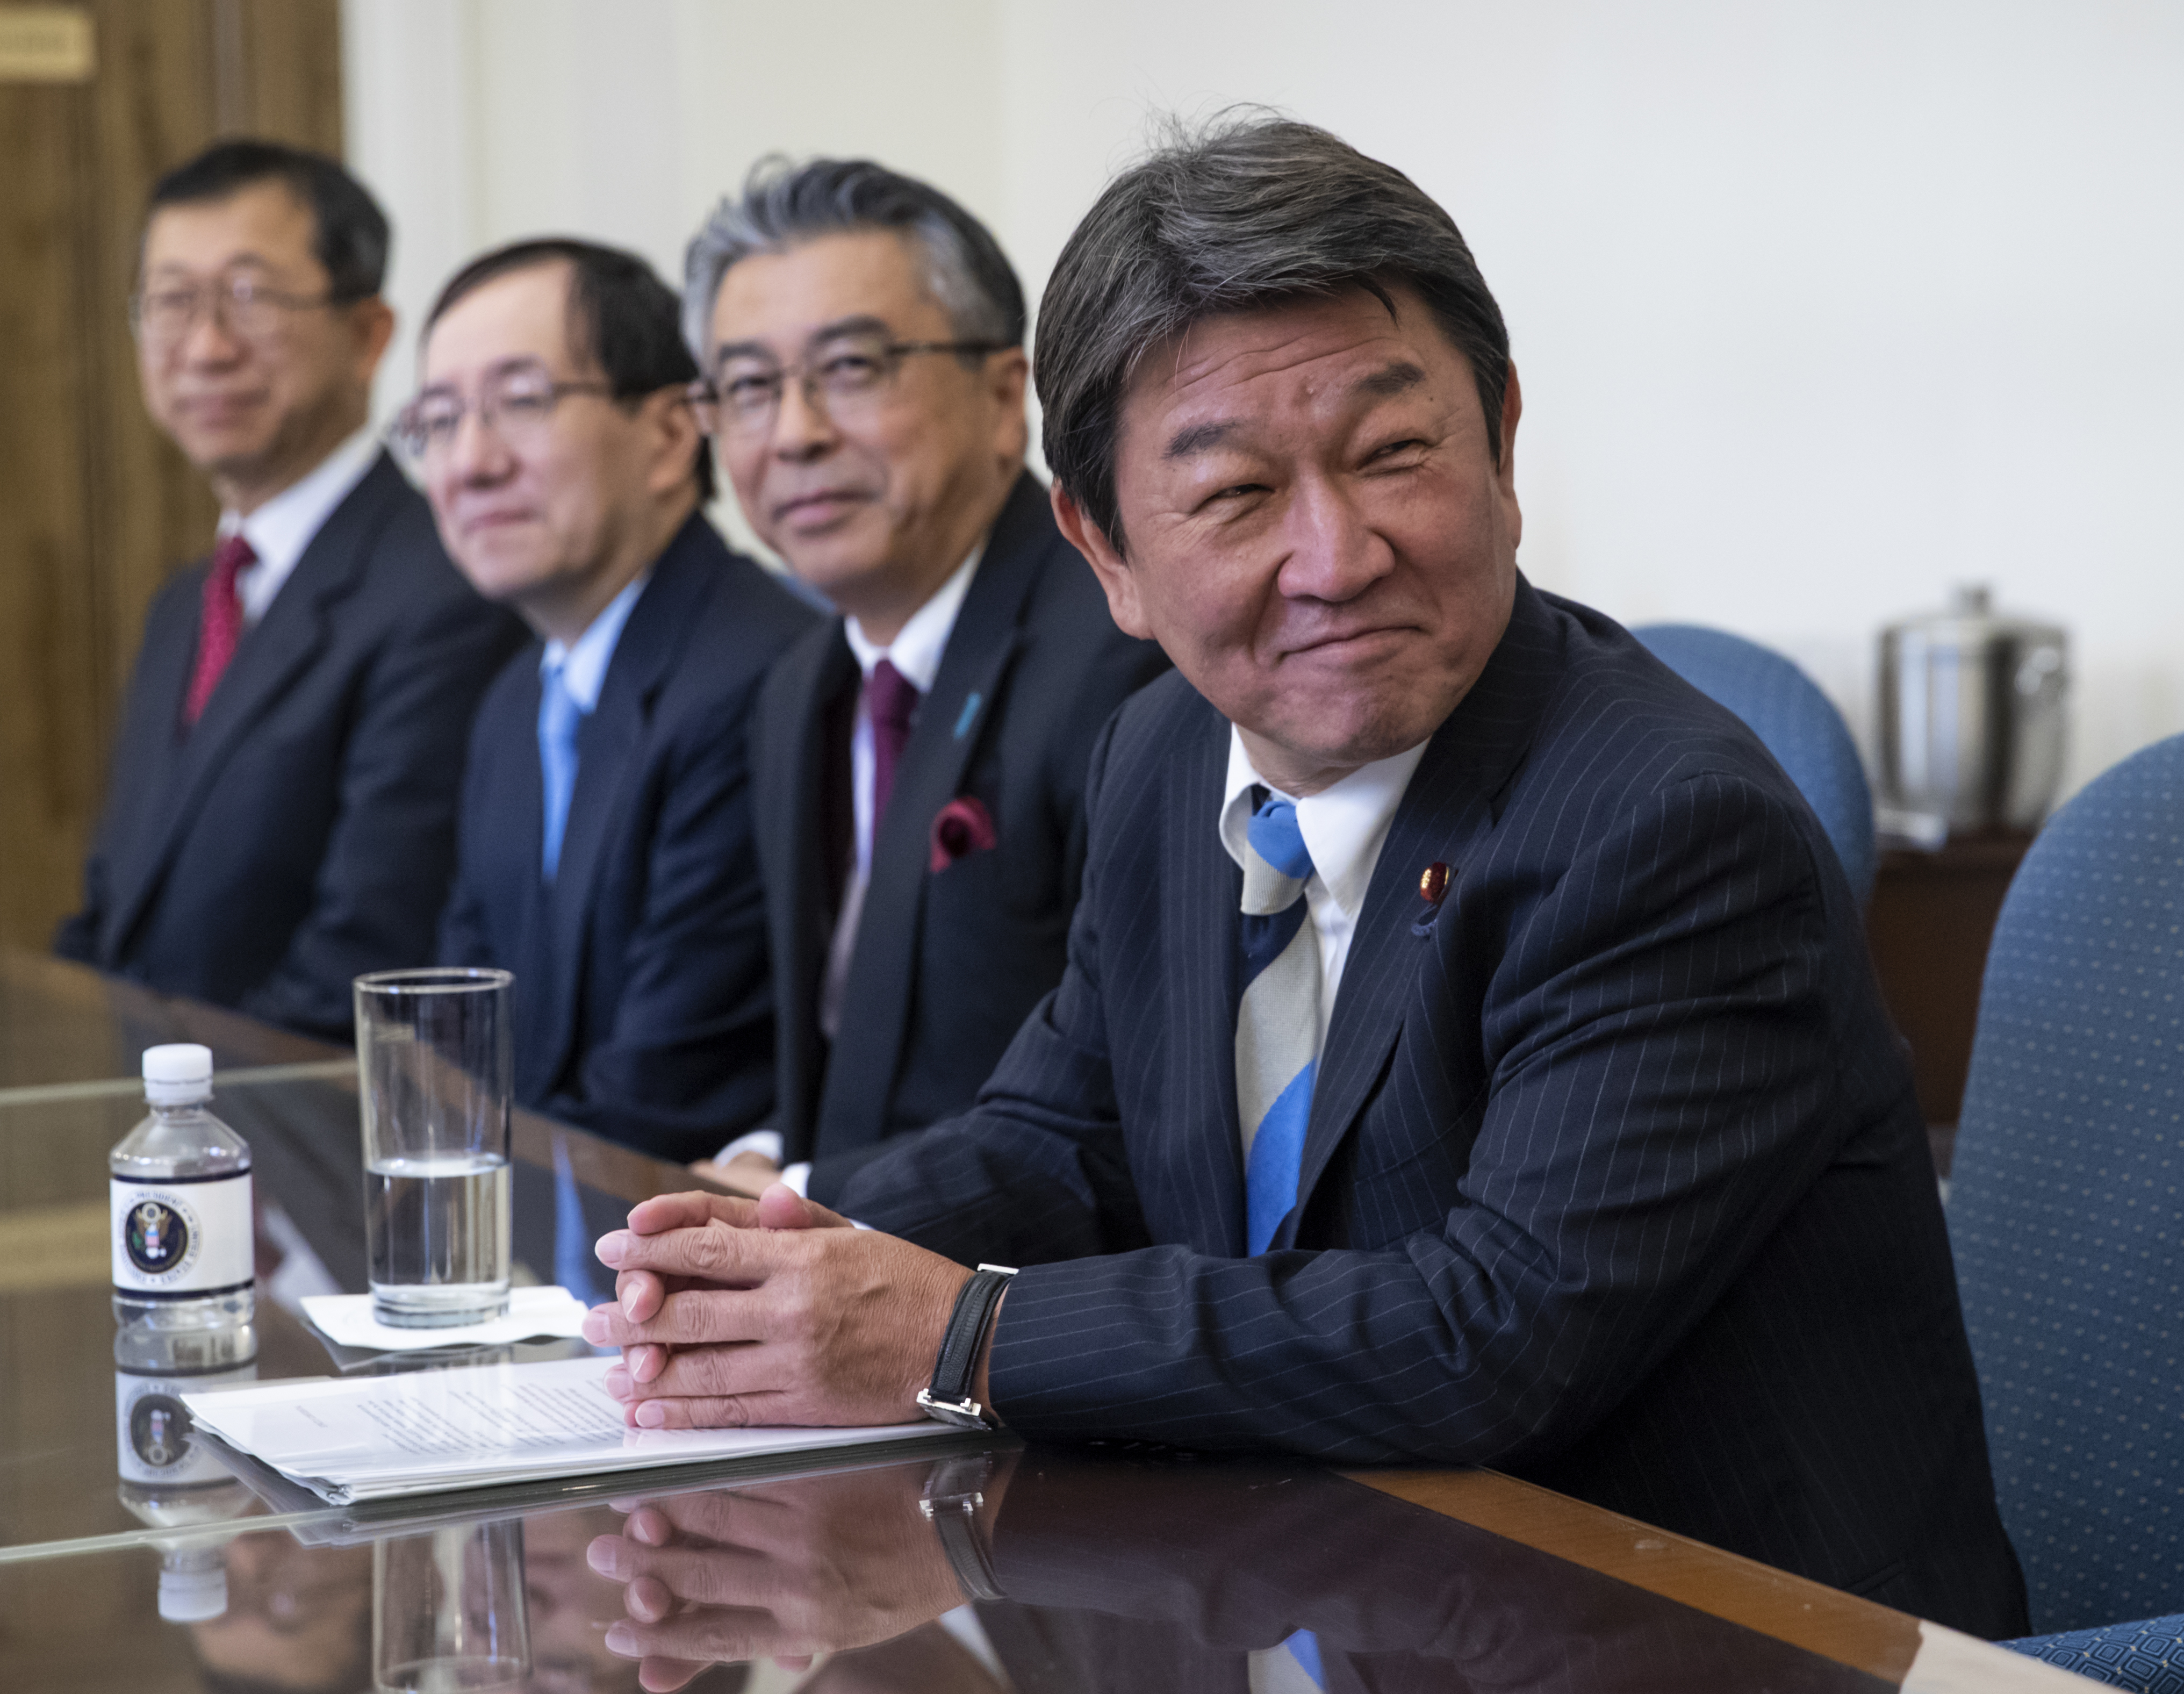 FILE - Toshimitsu Motegi, Japan's minister of economy, trade and industry, smiles as he and U.S. Trade Representative Robert Lighthizer begin ministerial trade talks, at the Office of the U.S. Trade Representative in Washington, Aug. 9, 2018.